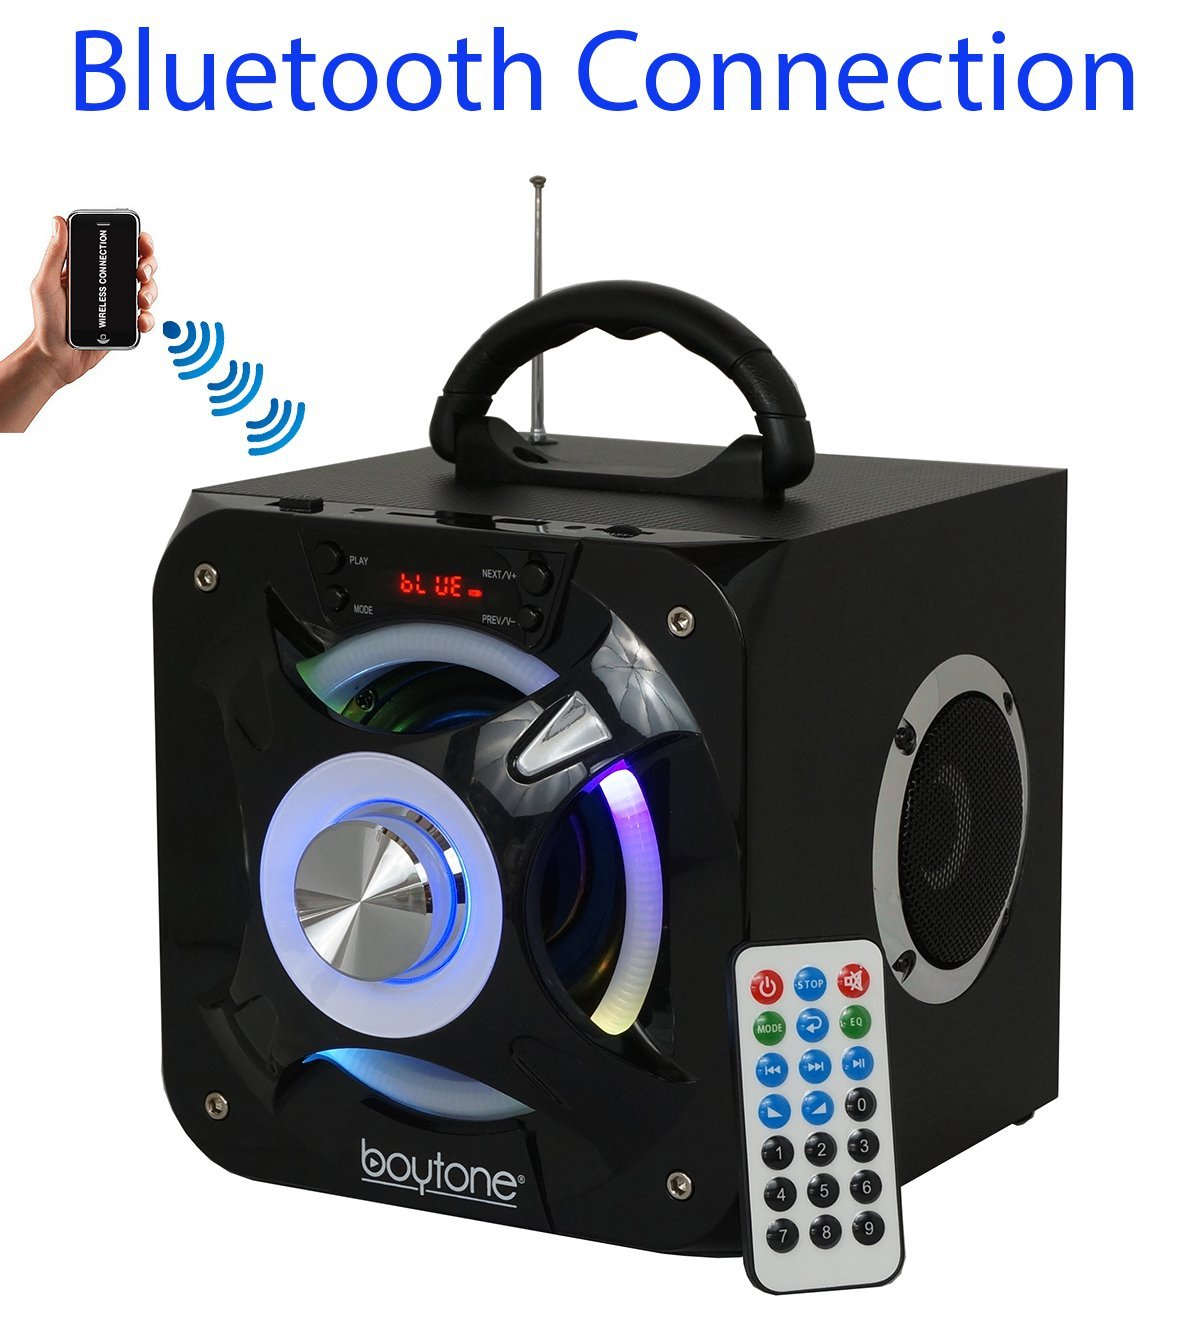 Boytone BT-32D Portable Bluetooth FM Radio Stereo speaker System, USB Port | SD card